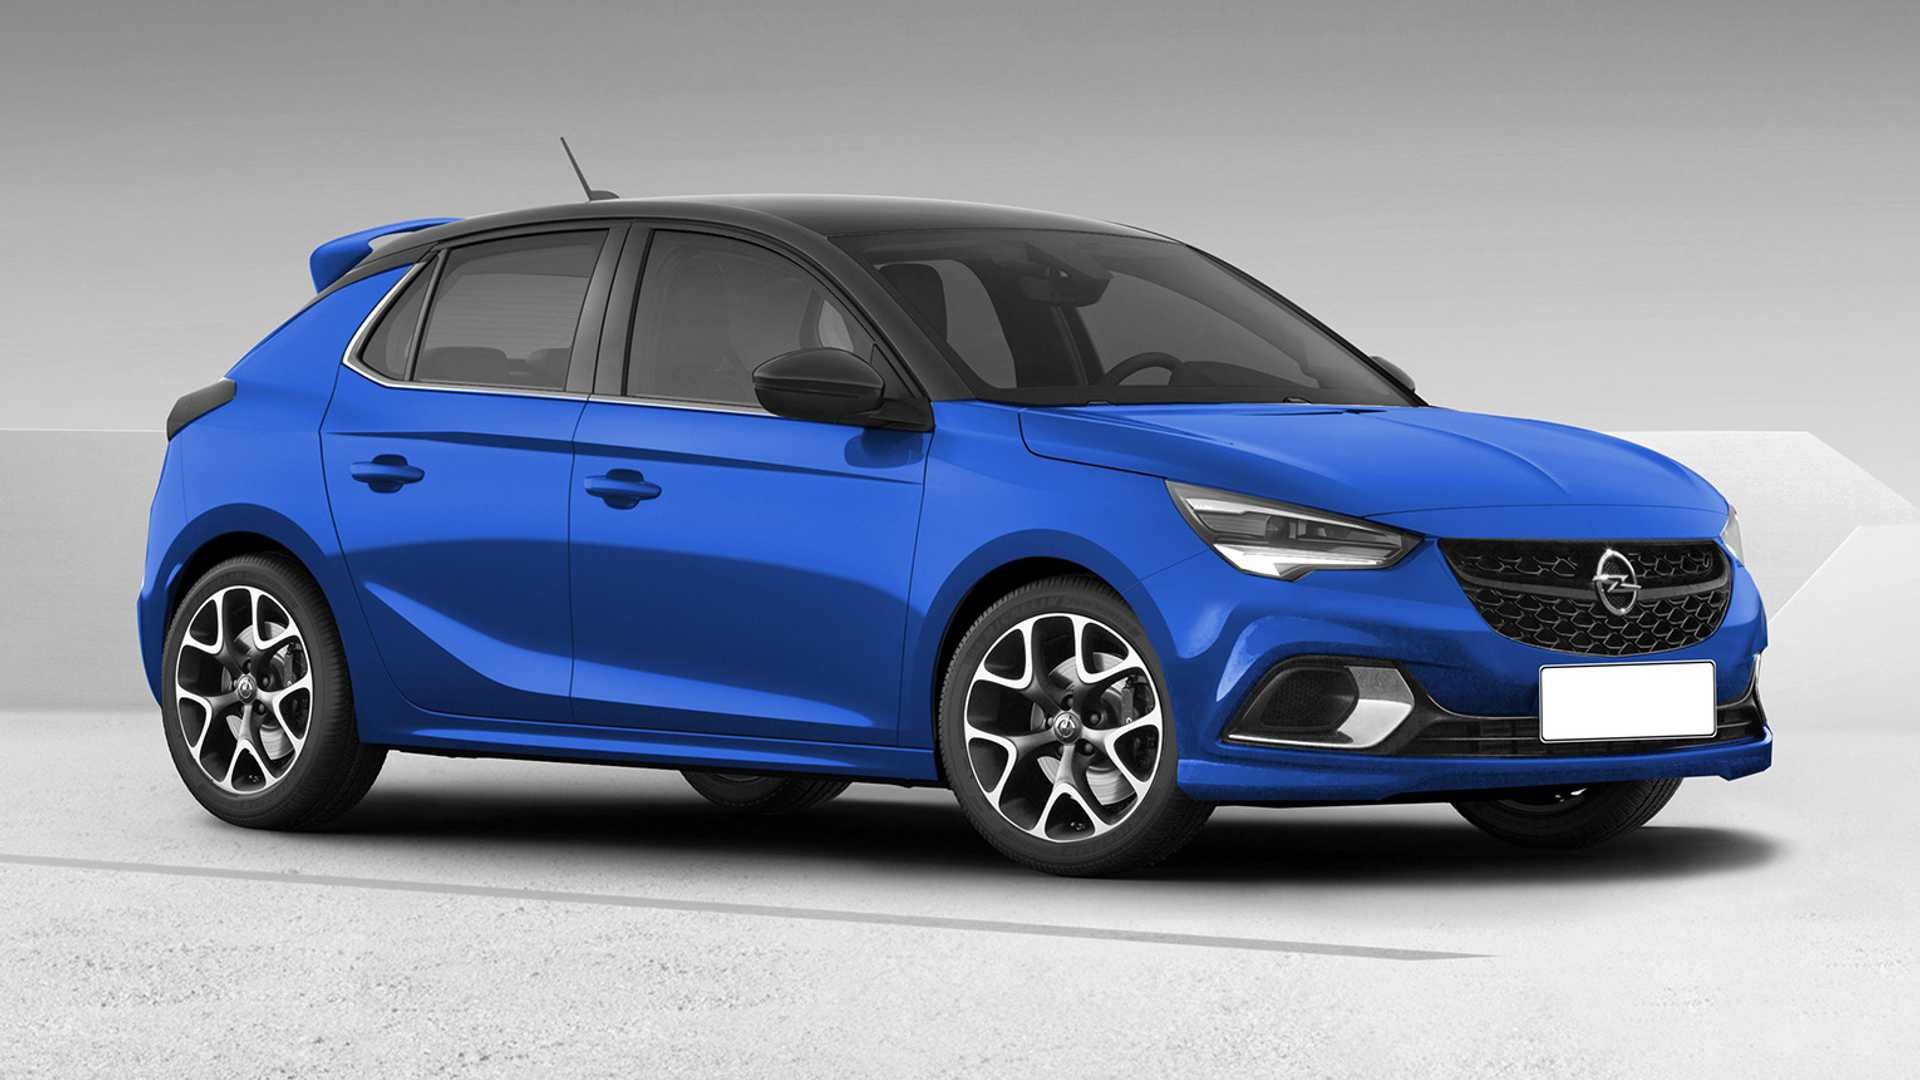 48 Best Review Opel Corsa 2020 Rendering Price with Opel Corsa 2020 Rendering